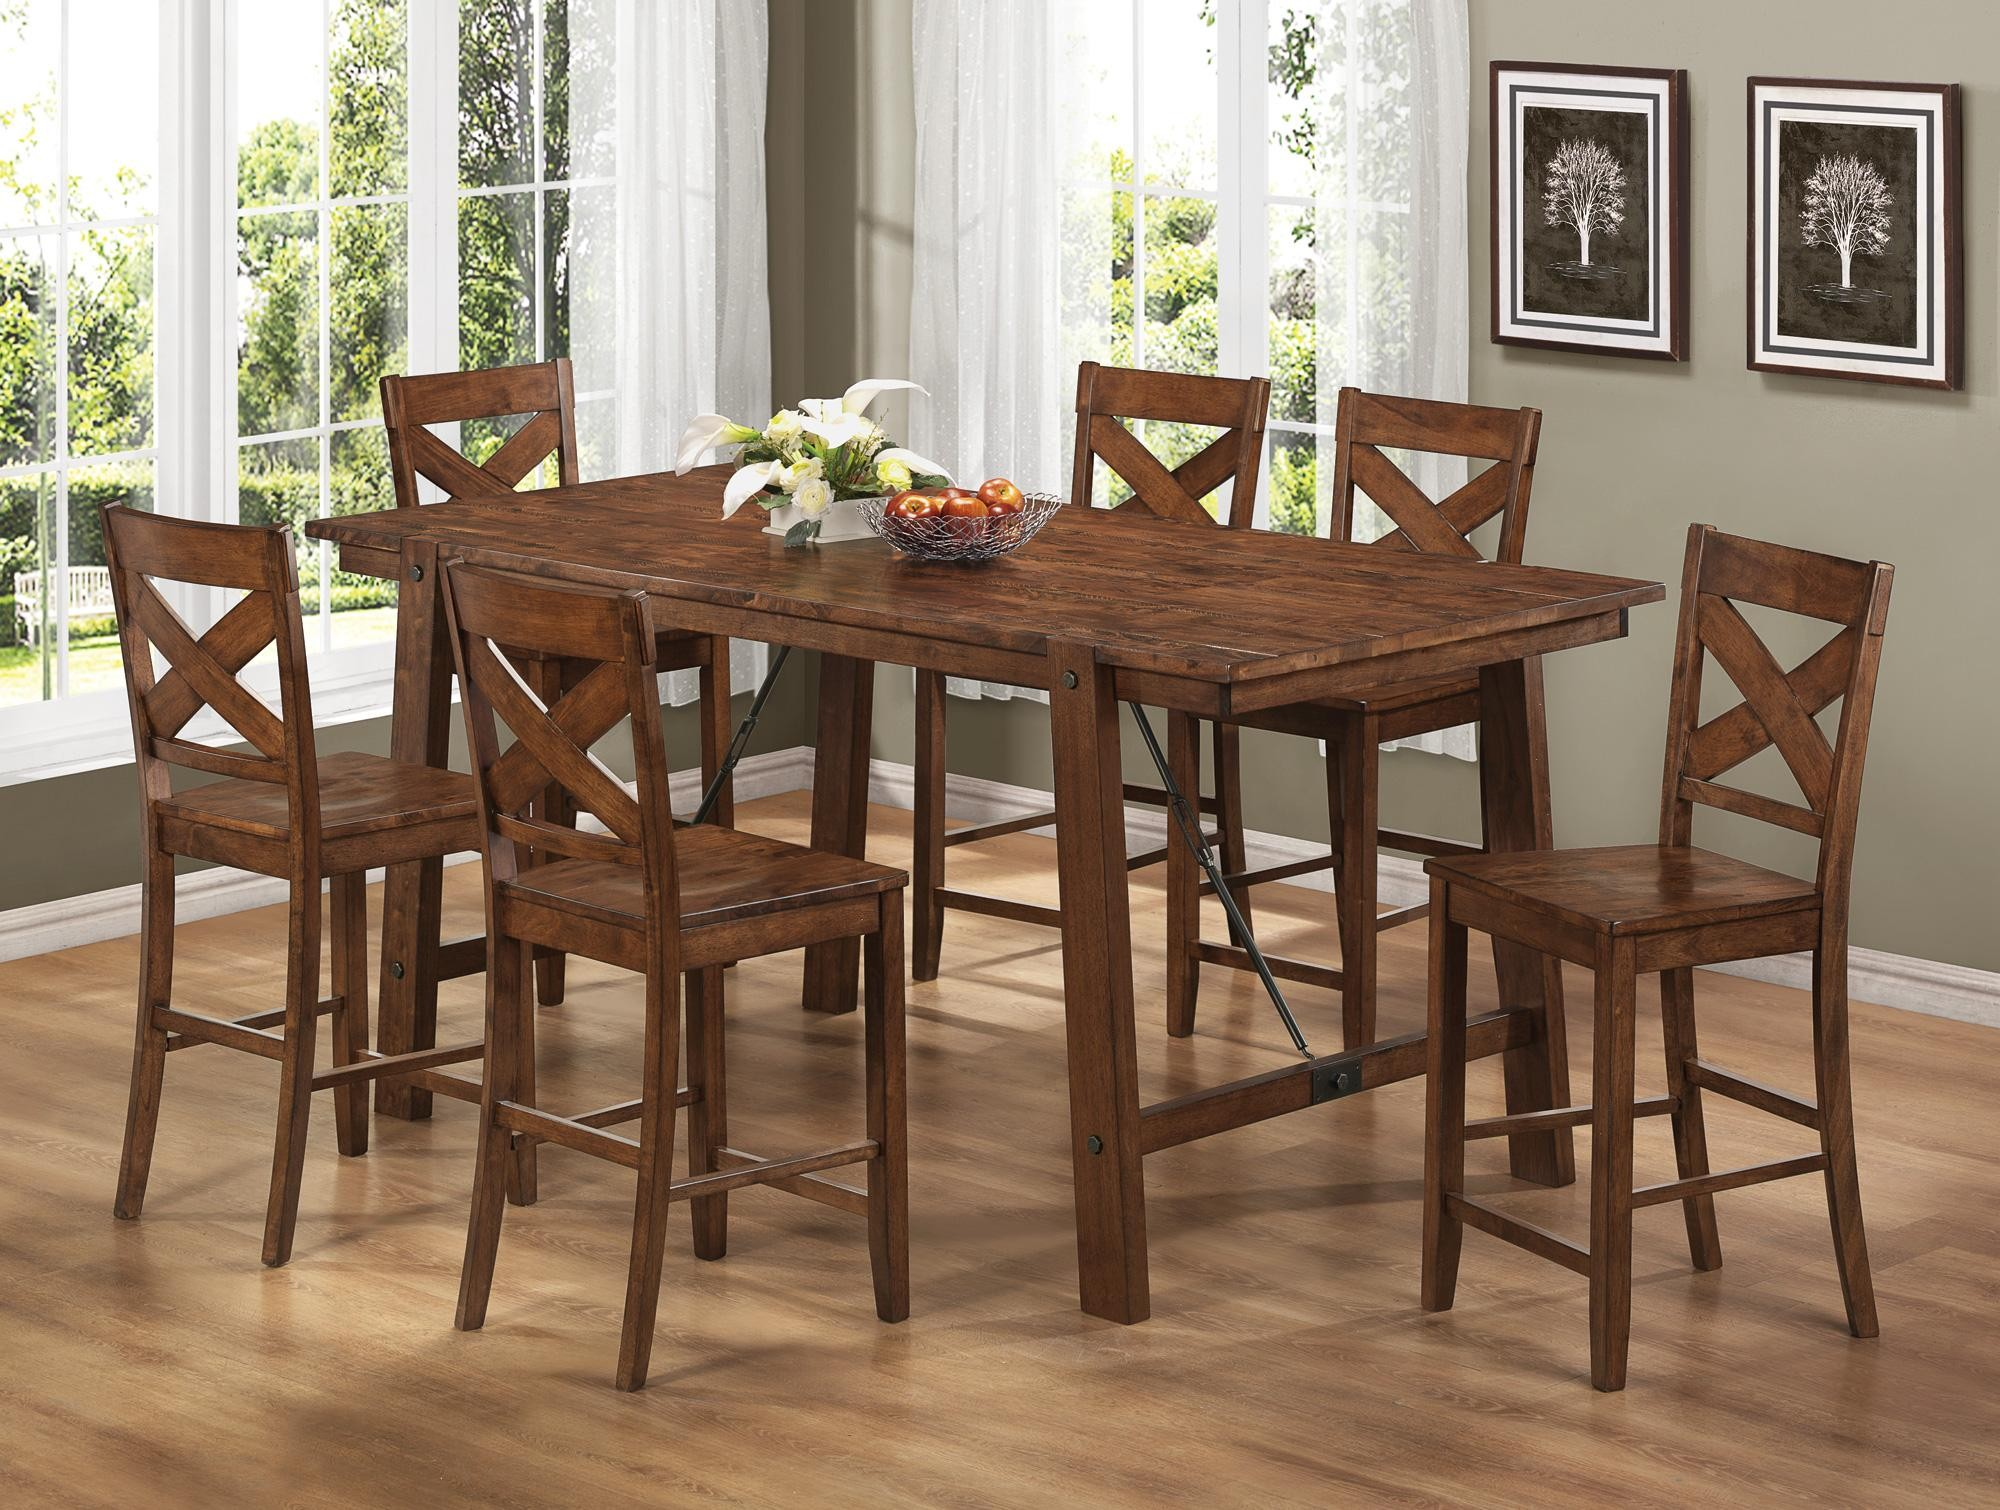 Lawson Rectangular Counter Height Dining Room Set